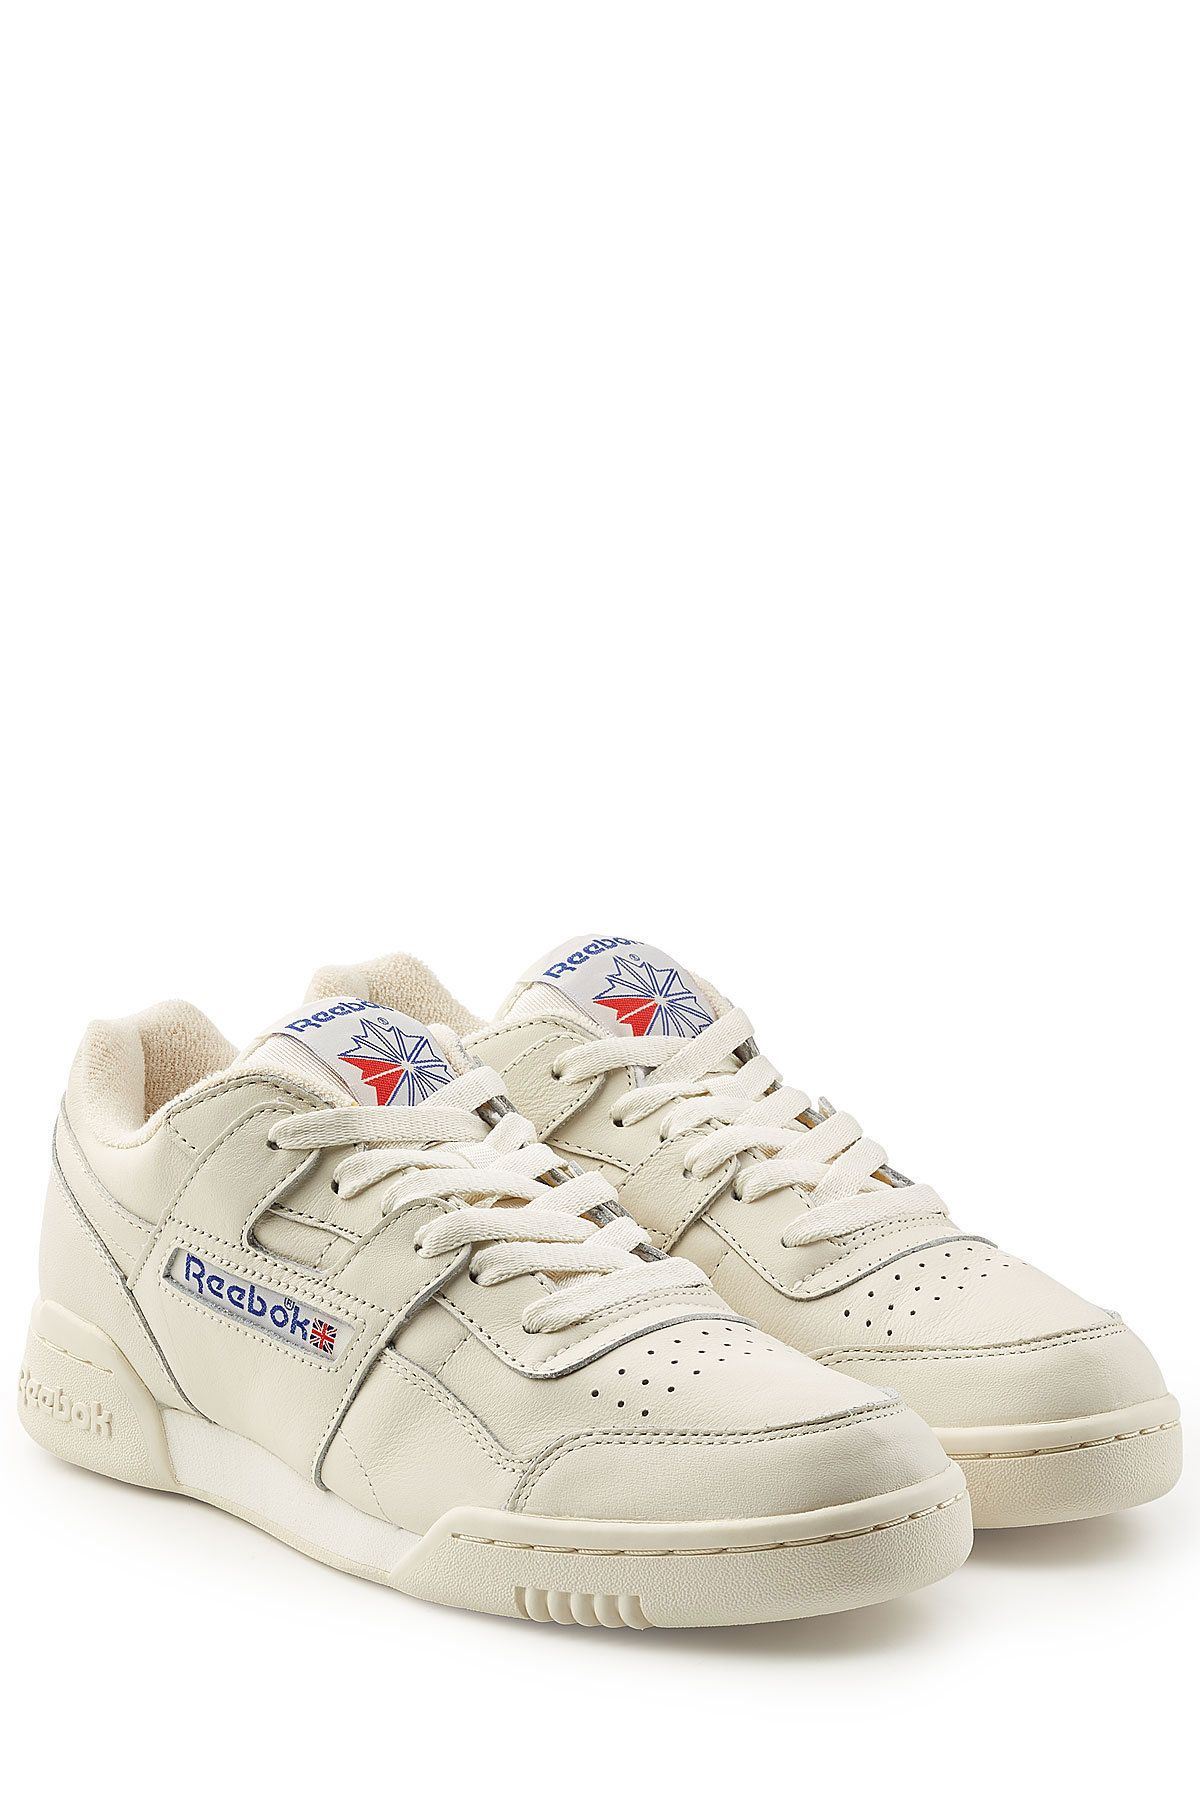 1ef881313fa Workout Plus Vintage Sneakers - Reebok